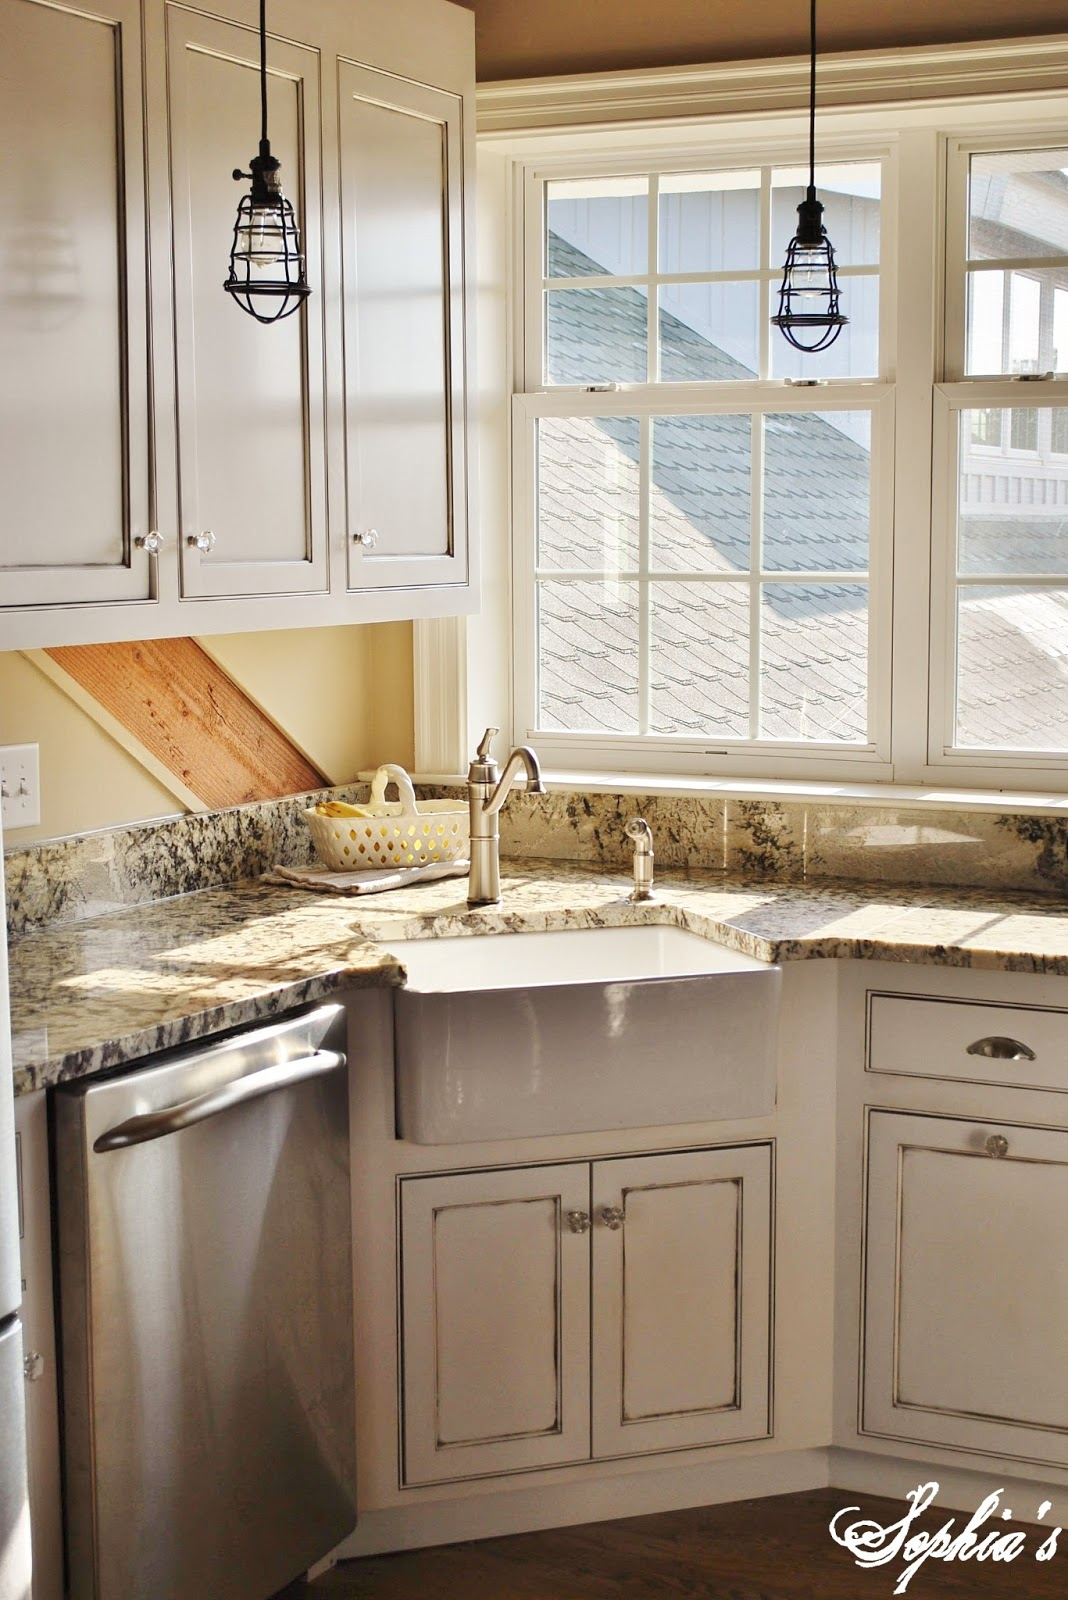 Barn Sinks For Kitchen : My favorite area of the apartment is the kitchen with apron sink ...